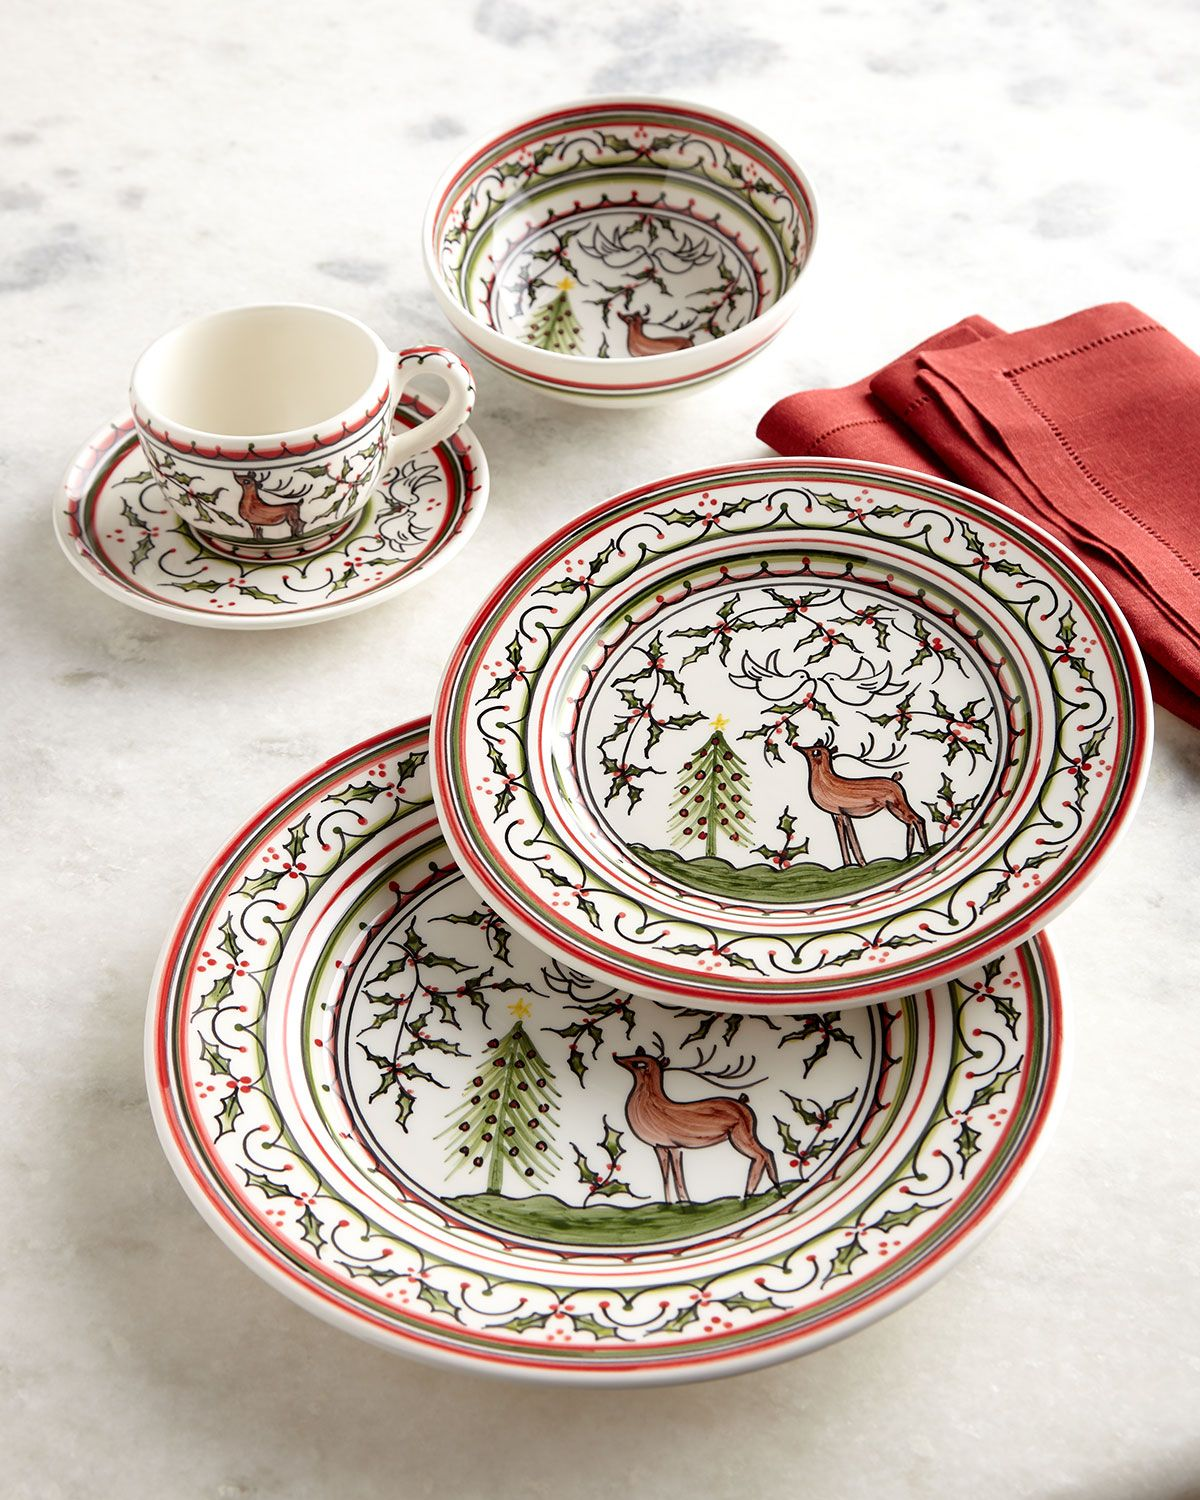 Pre Cooked Christmas Dinner From Neiman Marcus 2020 Neiman Marcus Christmas Pavoes 20 Piece Dinnerware Set in 2020